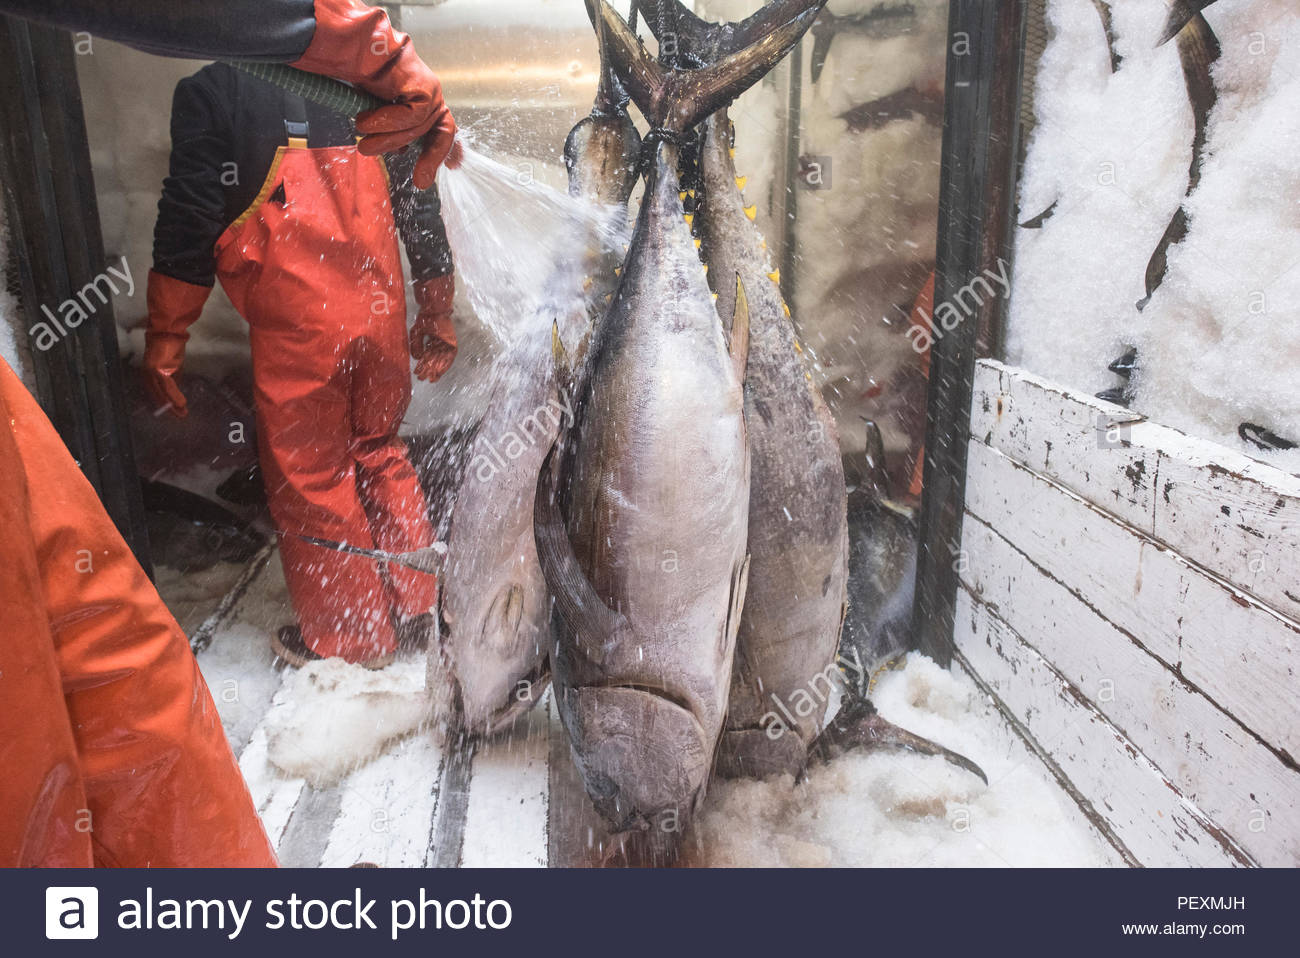 Fishermen cleaning yellowtail fish on fishing boat, San Diego, California, USA - Stock Image